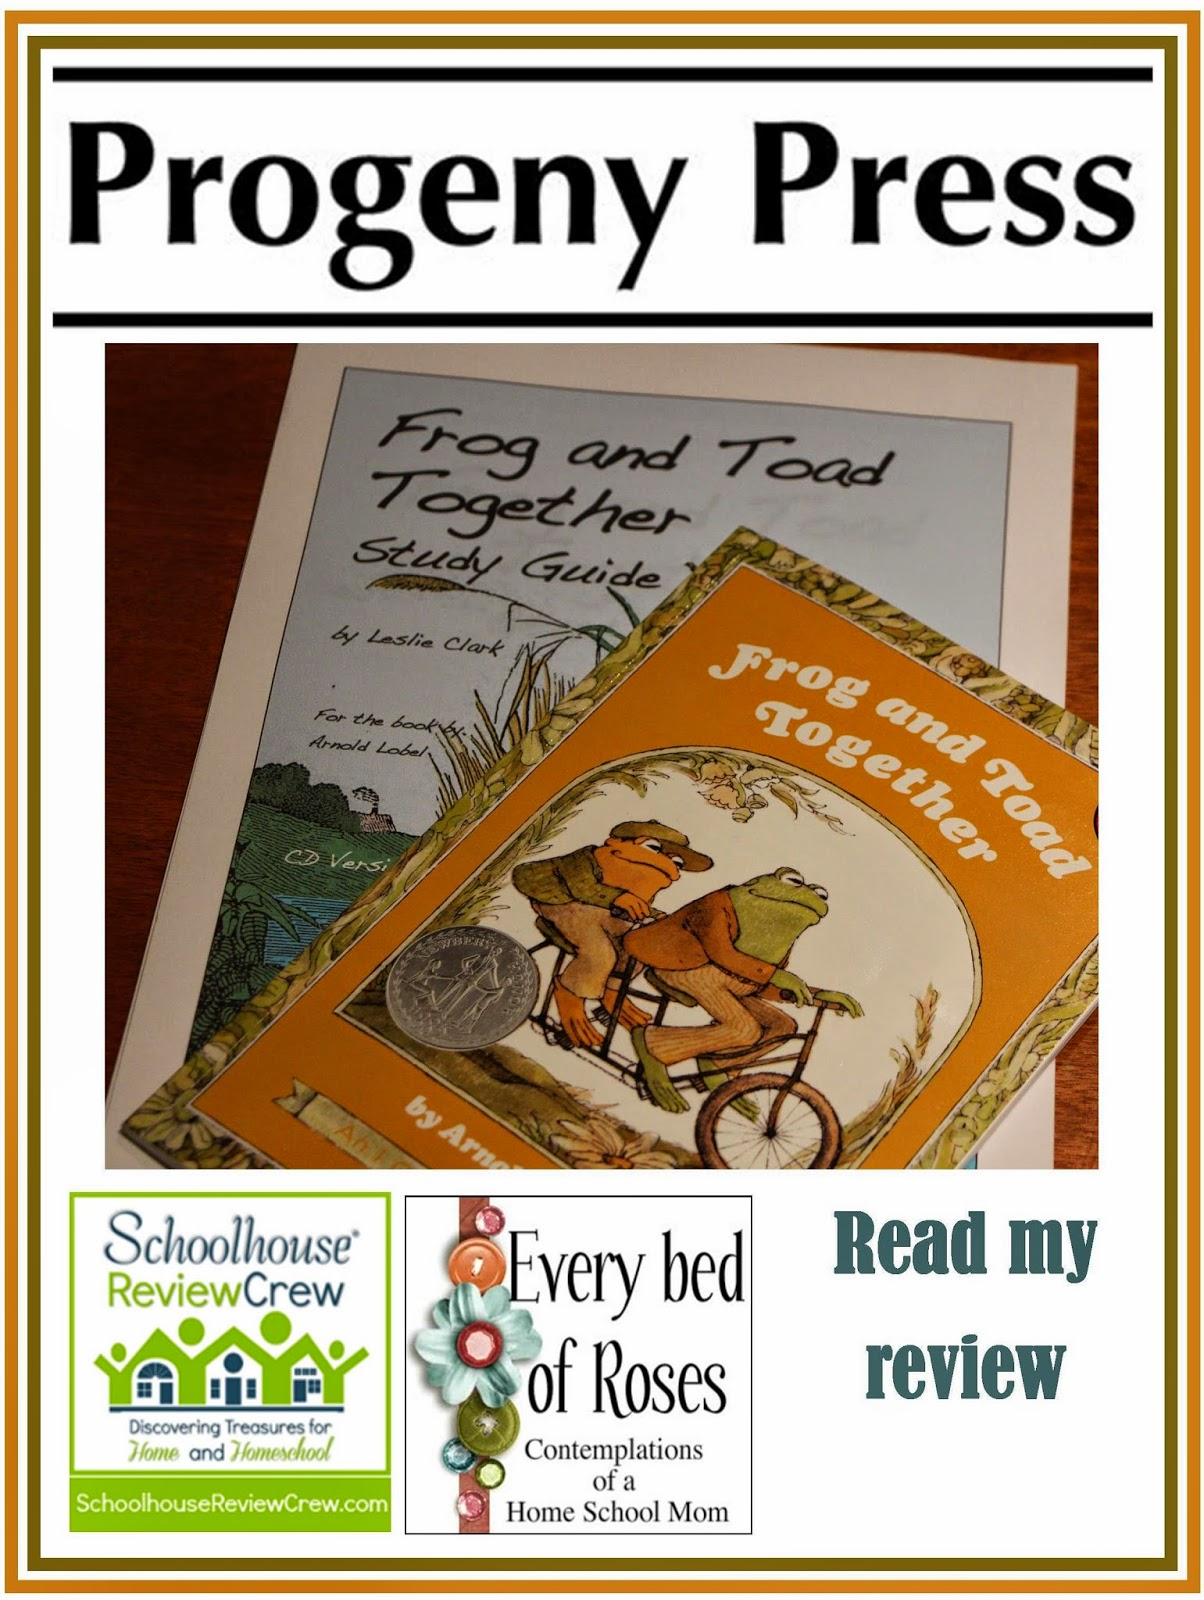 Every Bed Of Roses Progeny Press Frog And Toad Together